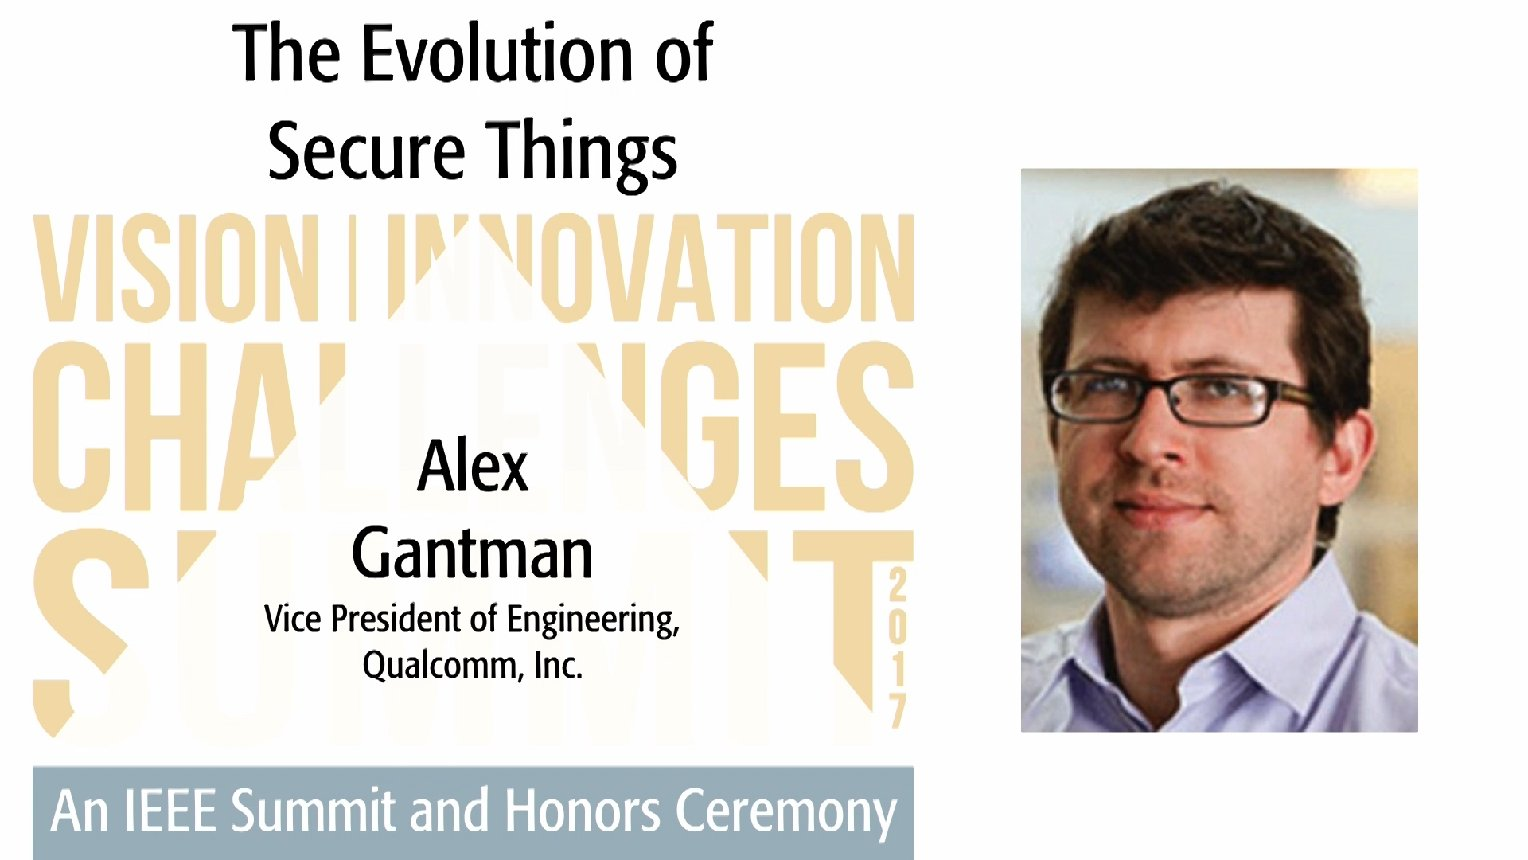 The Evolution of Secure Things - Alex Gantman, 2017 IEEE VIC Summit